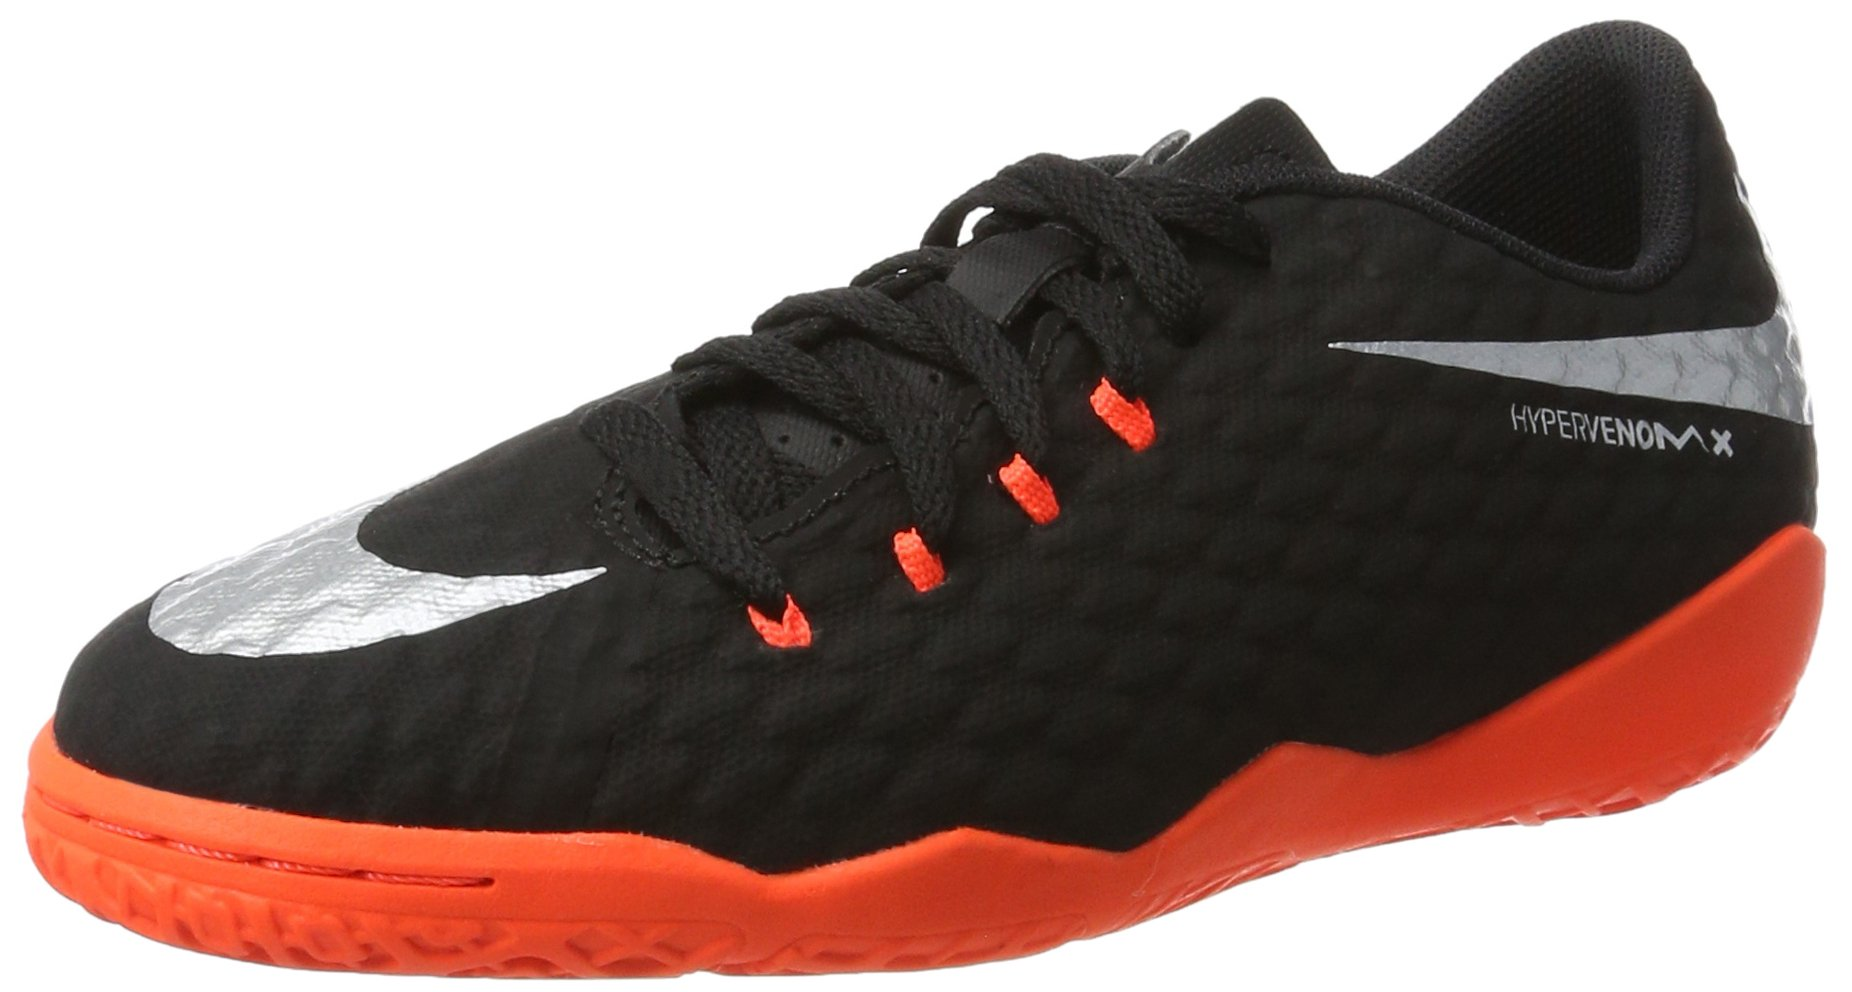 NIKE Youth Hypervenomx Phelon III Indoor Shoes [Black] (4.5Y)